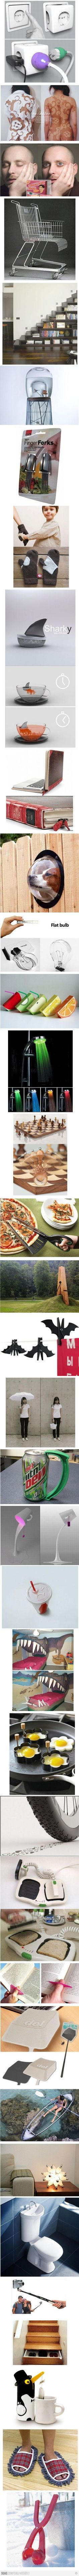 funny/cool inventions